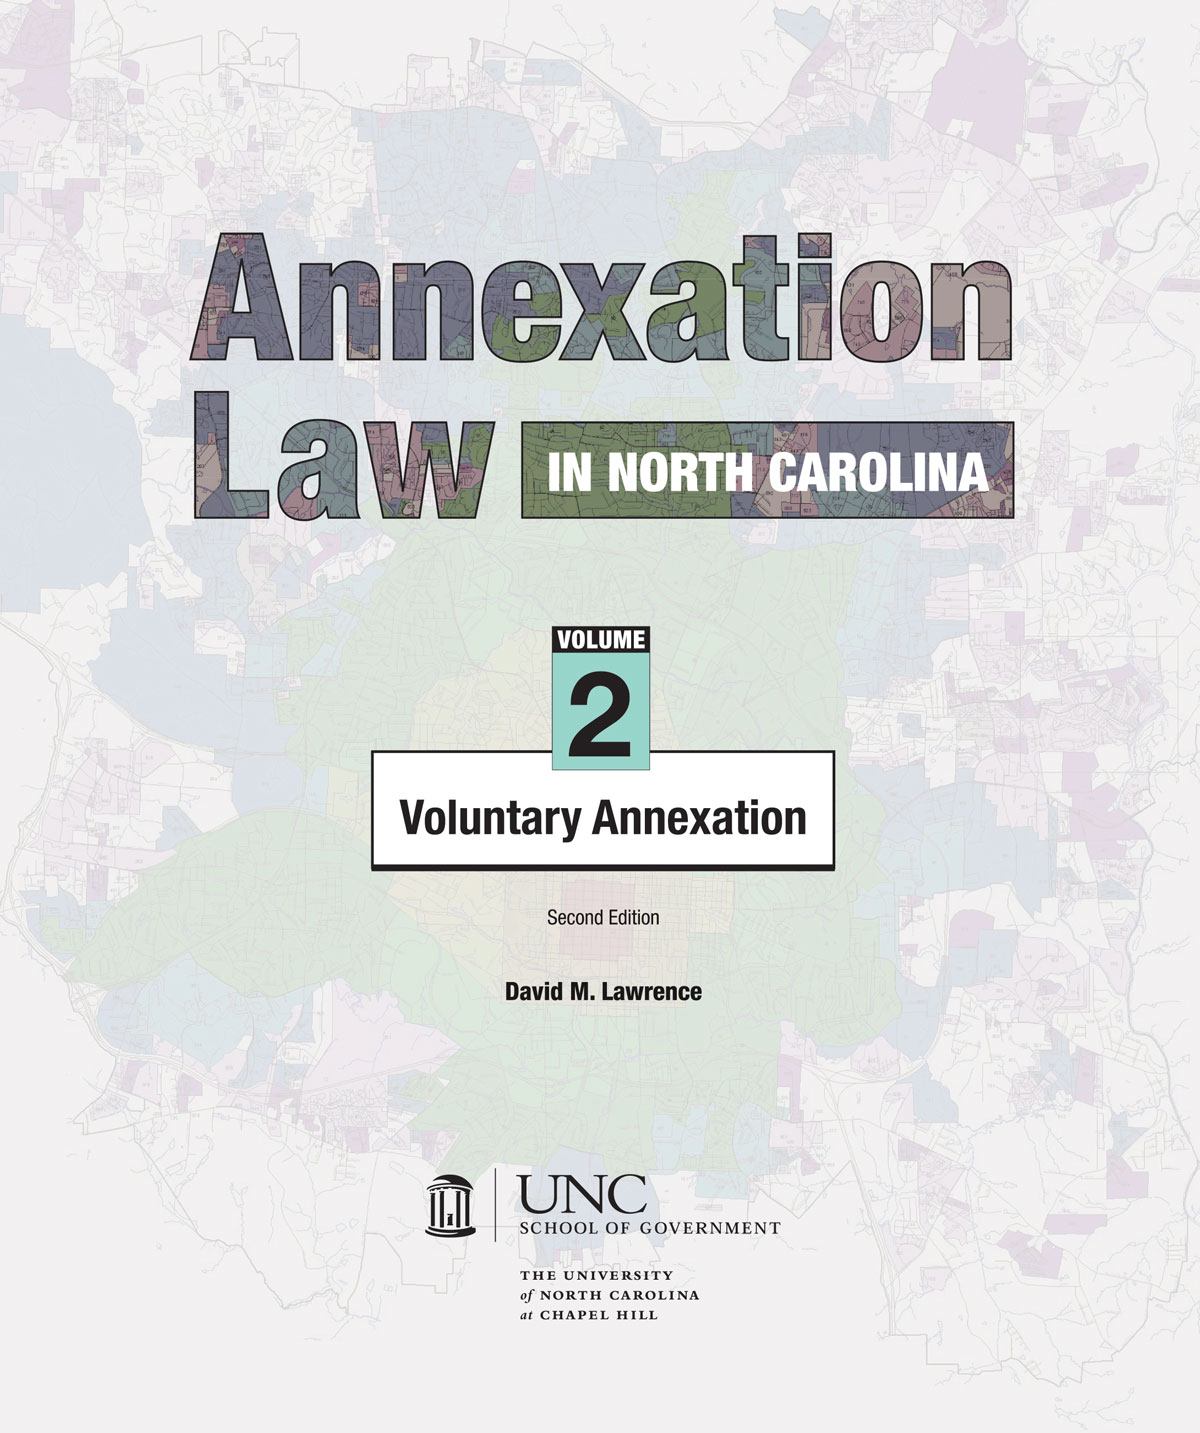 Cover image for Annexation Law in North Carolina: Volume 2 - Voluntary Annexation